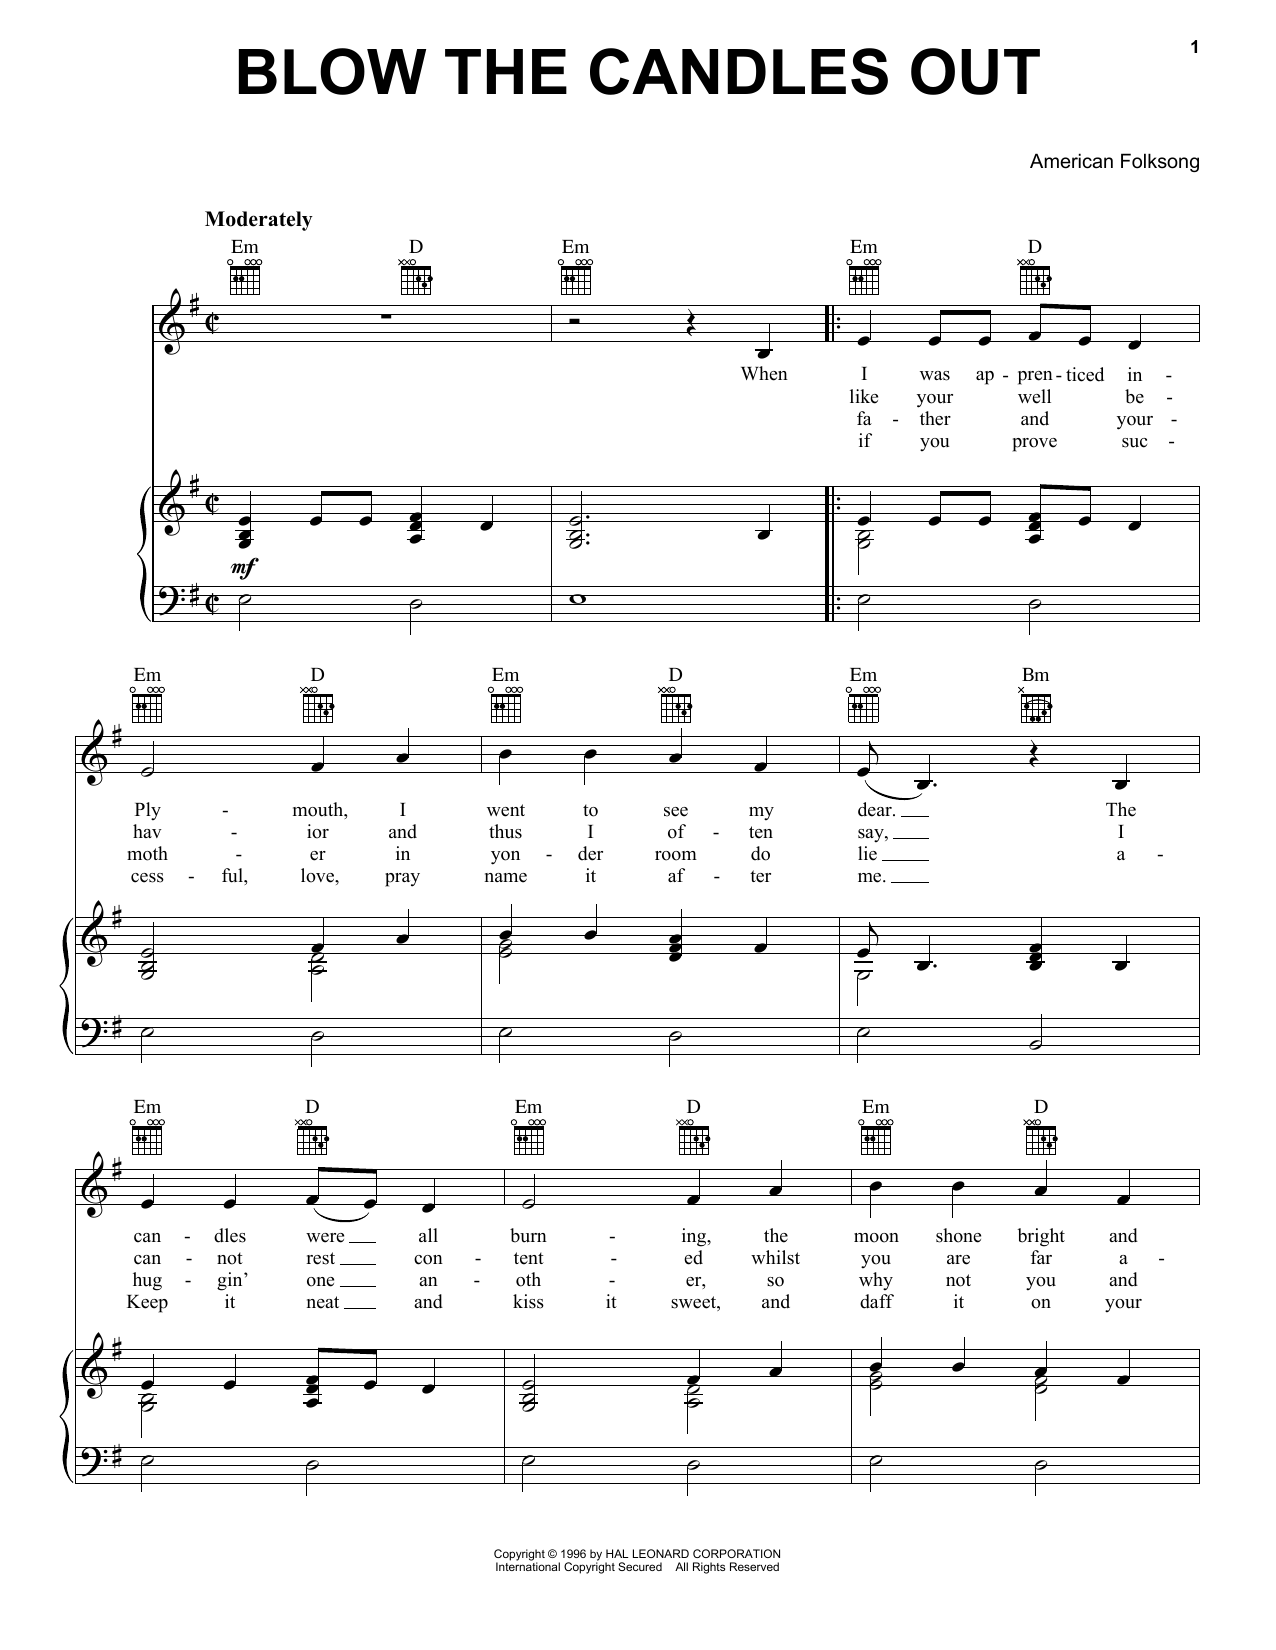 Blow The Candles Out sheet music for voice, piano or guitar by American Folksong